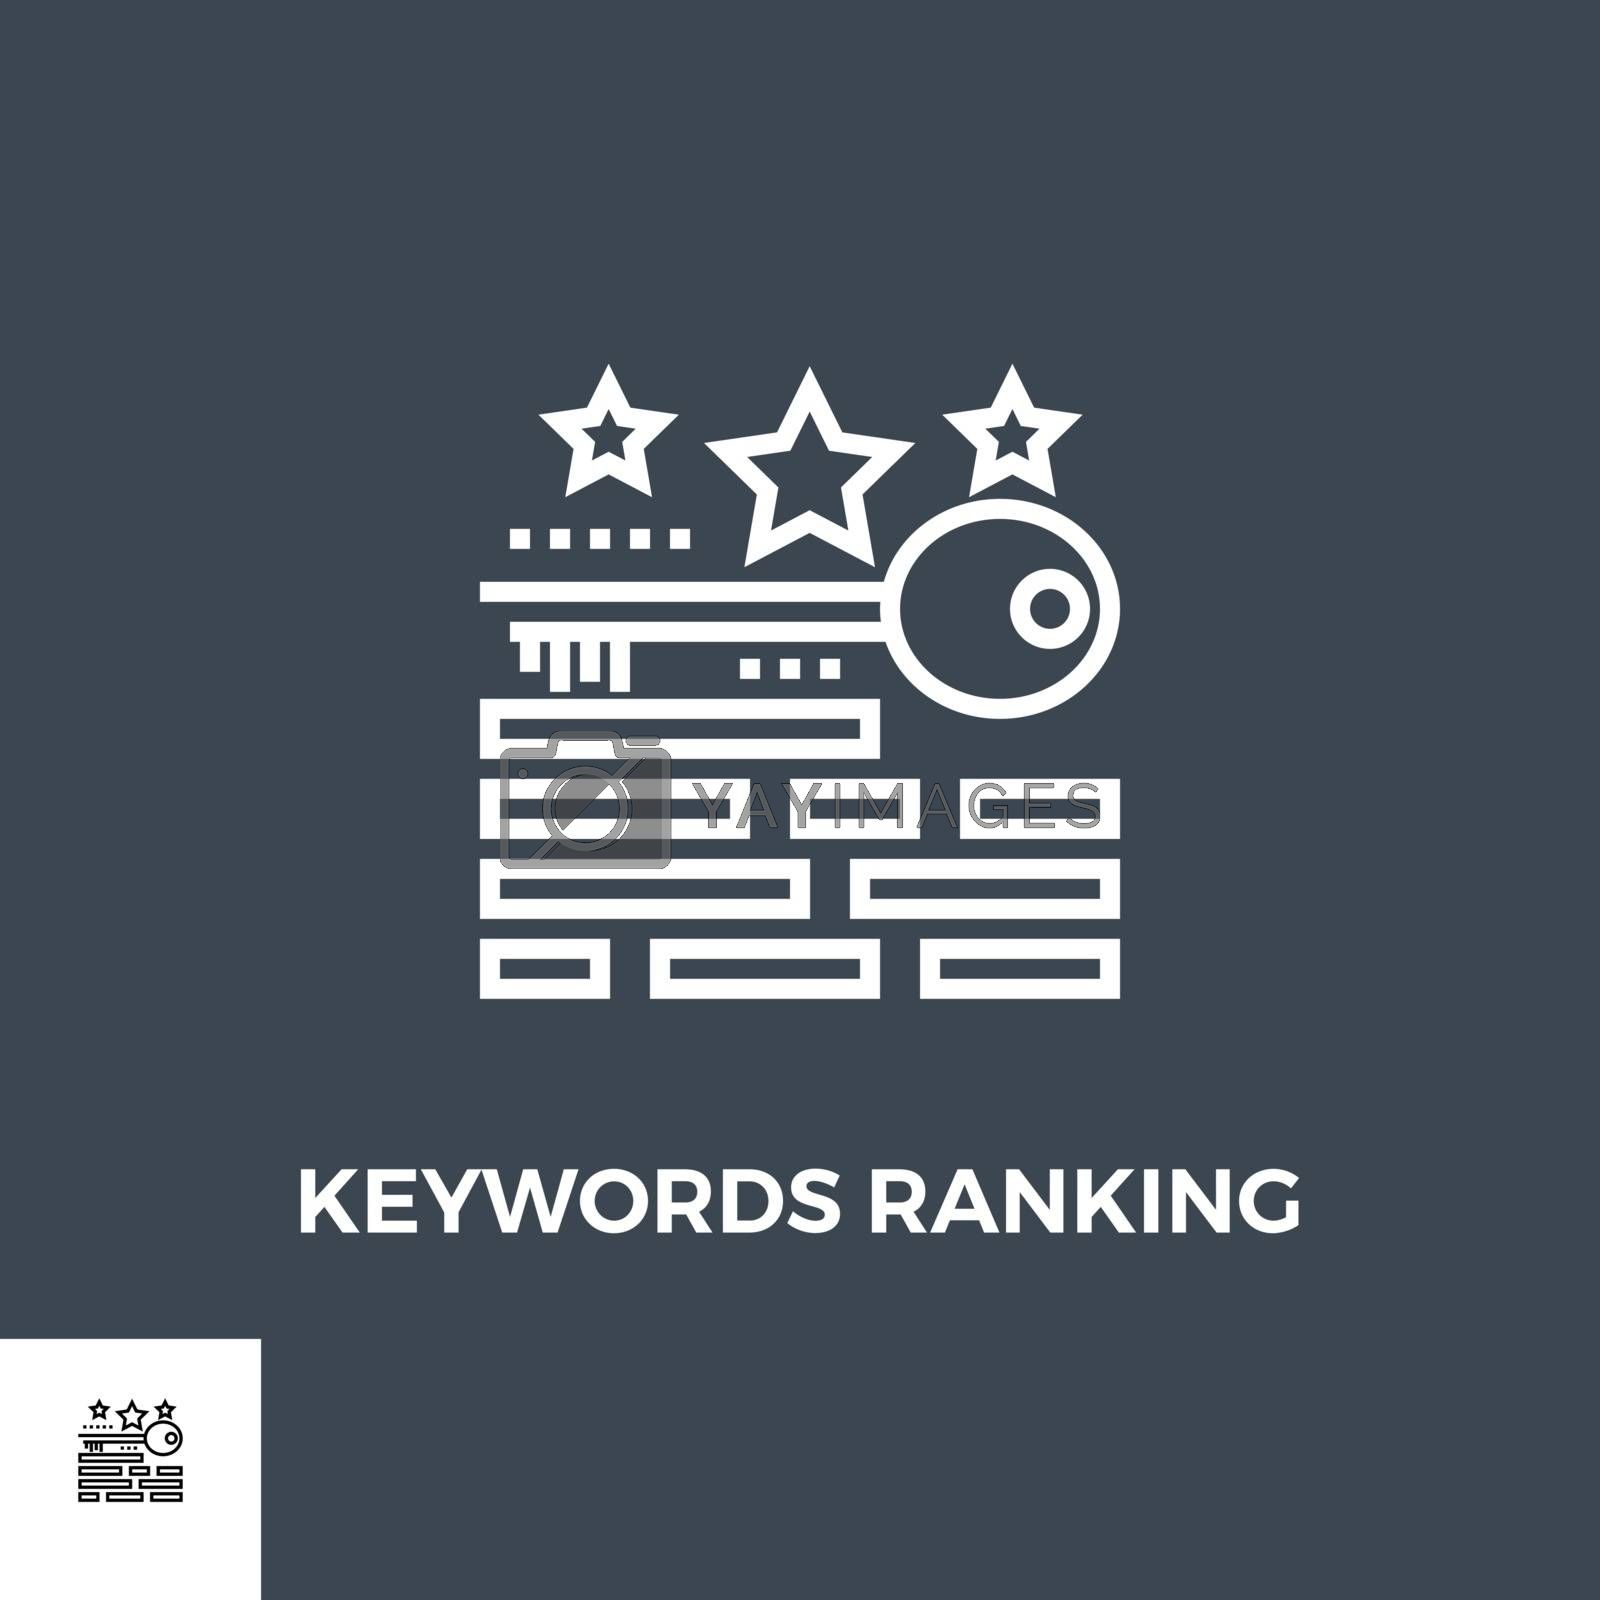 Keywords Ranking icon vector. Flat icon isolated on the black background. Editable EPS file. Vector illustration.